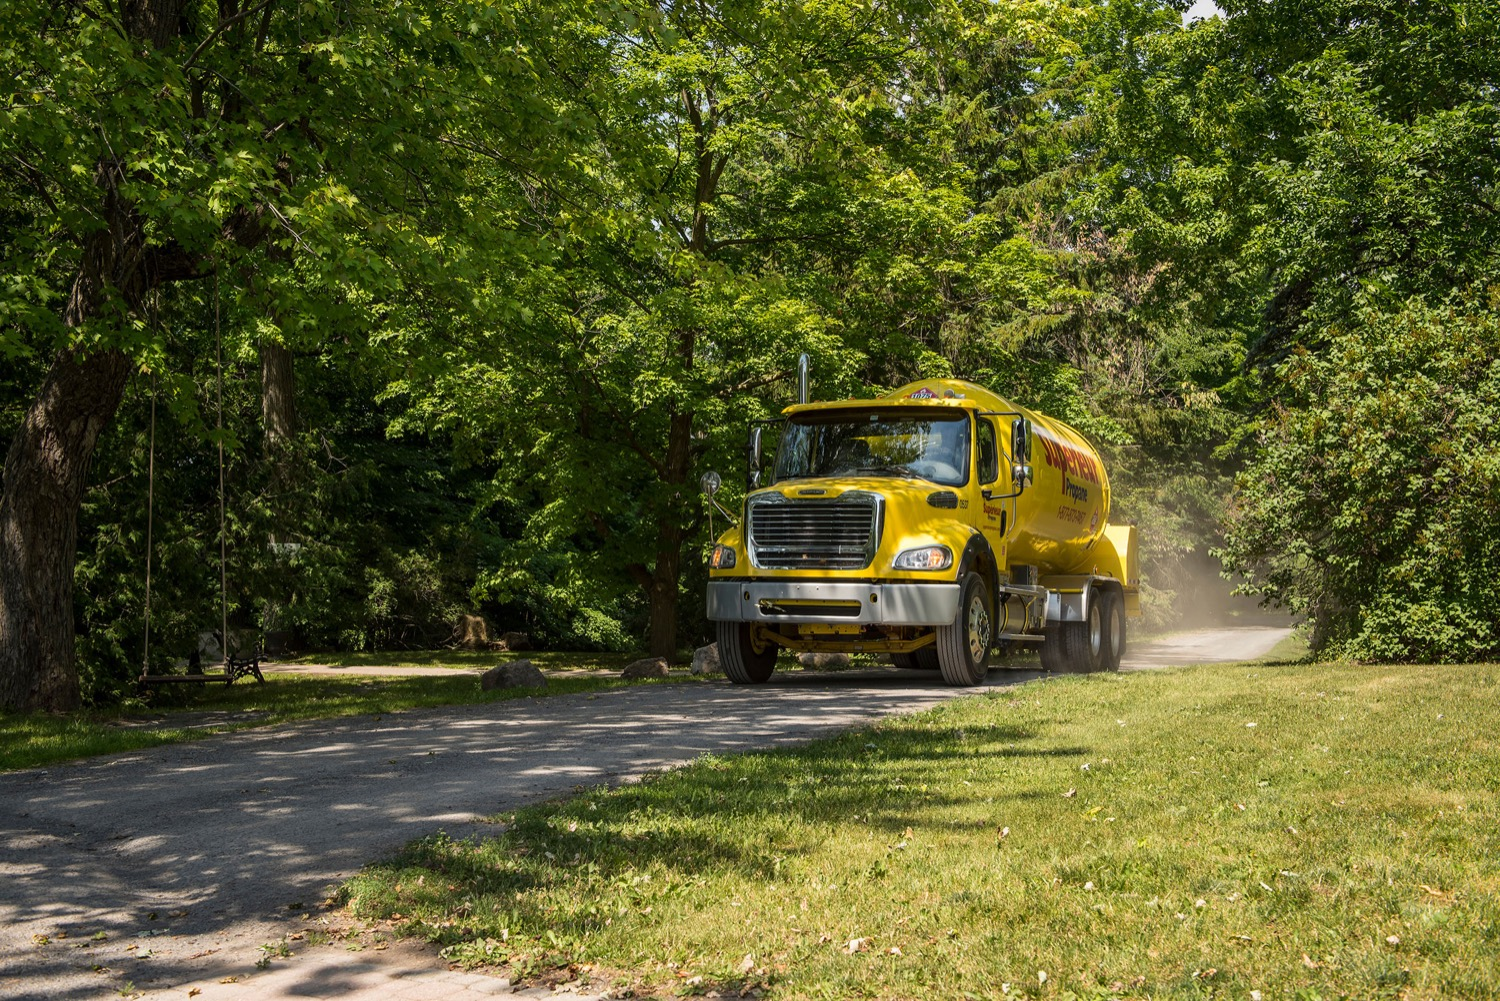 Superior Propane truck making a delivery to a home on a tree-lined rural dirt road.